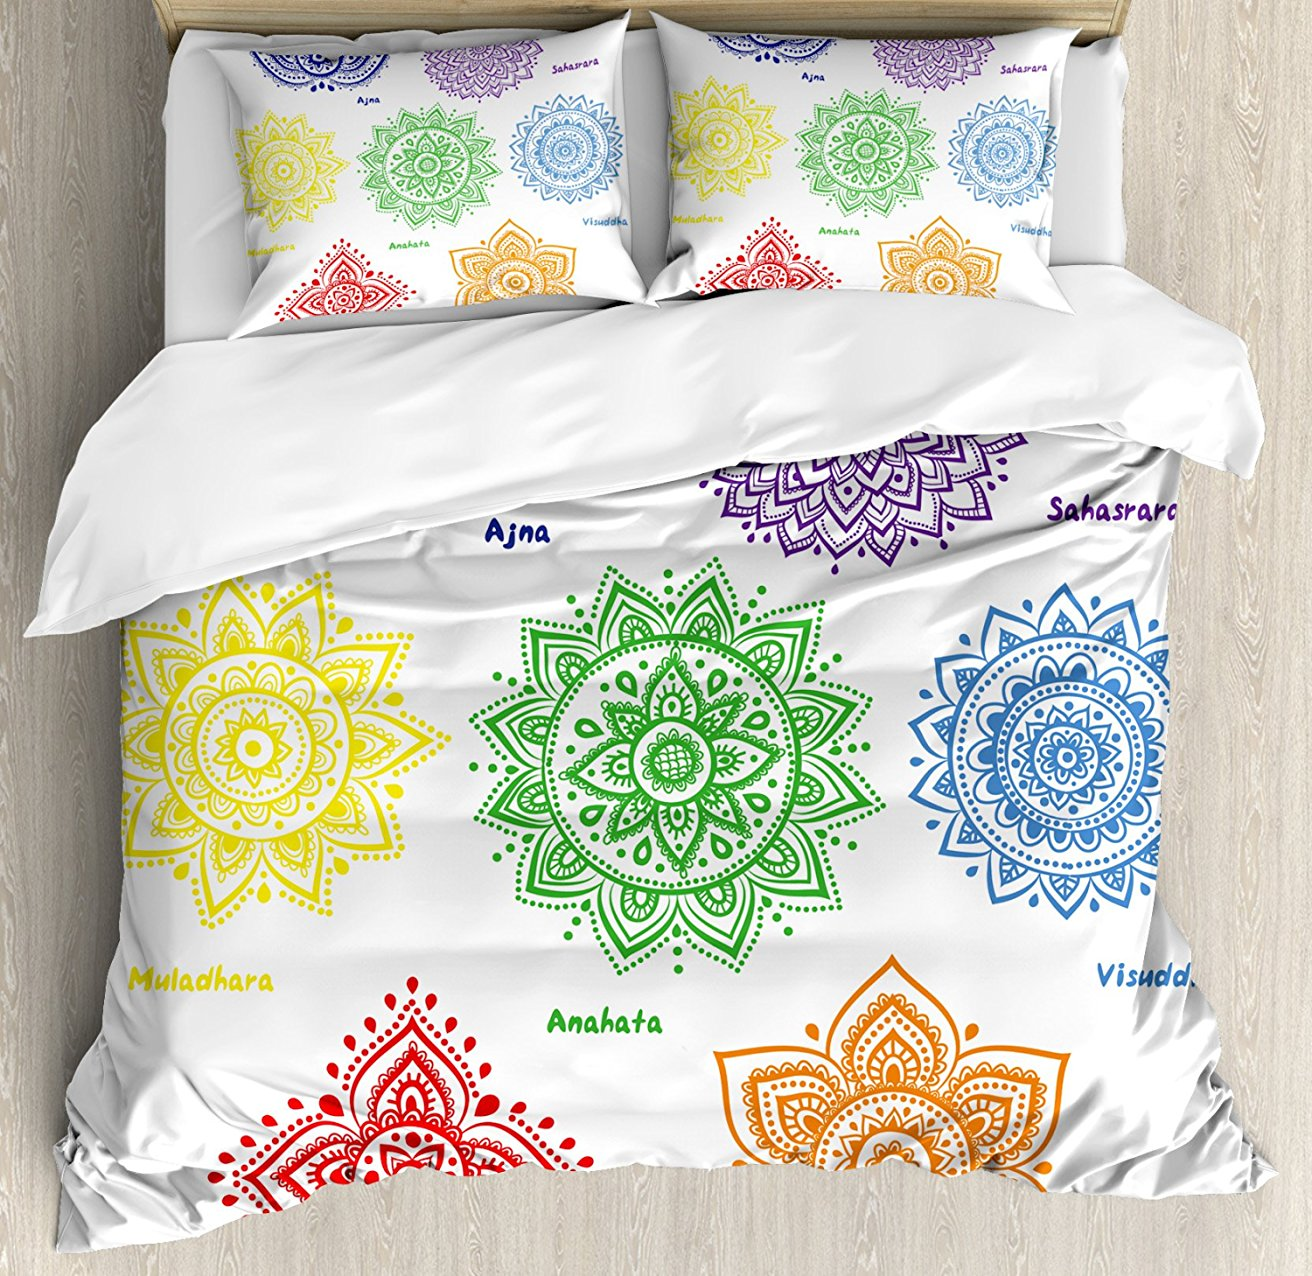 Chakra Decor Duvet Cover Set Collection of Symbols in Different Colors with Ornate Round Mandala Asian Print 4 Piece Bedding Set